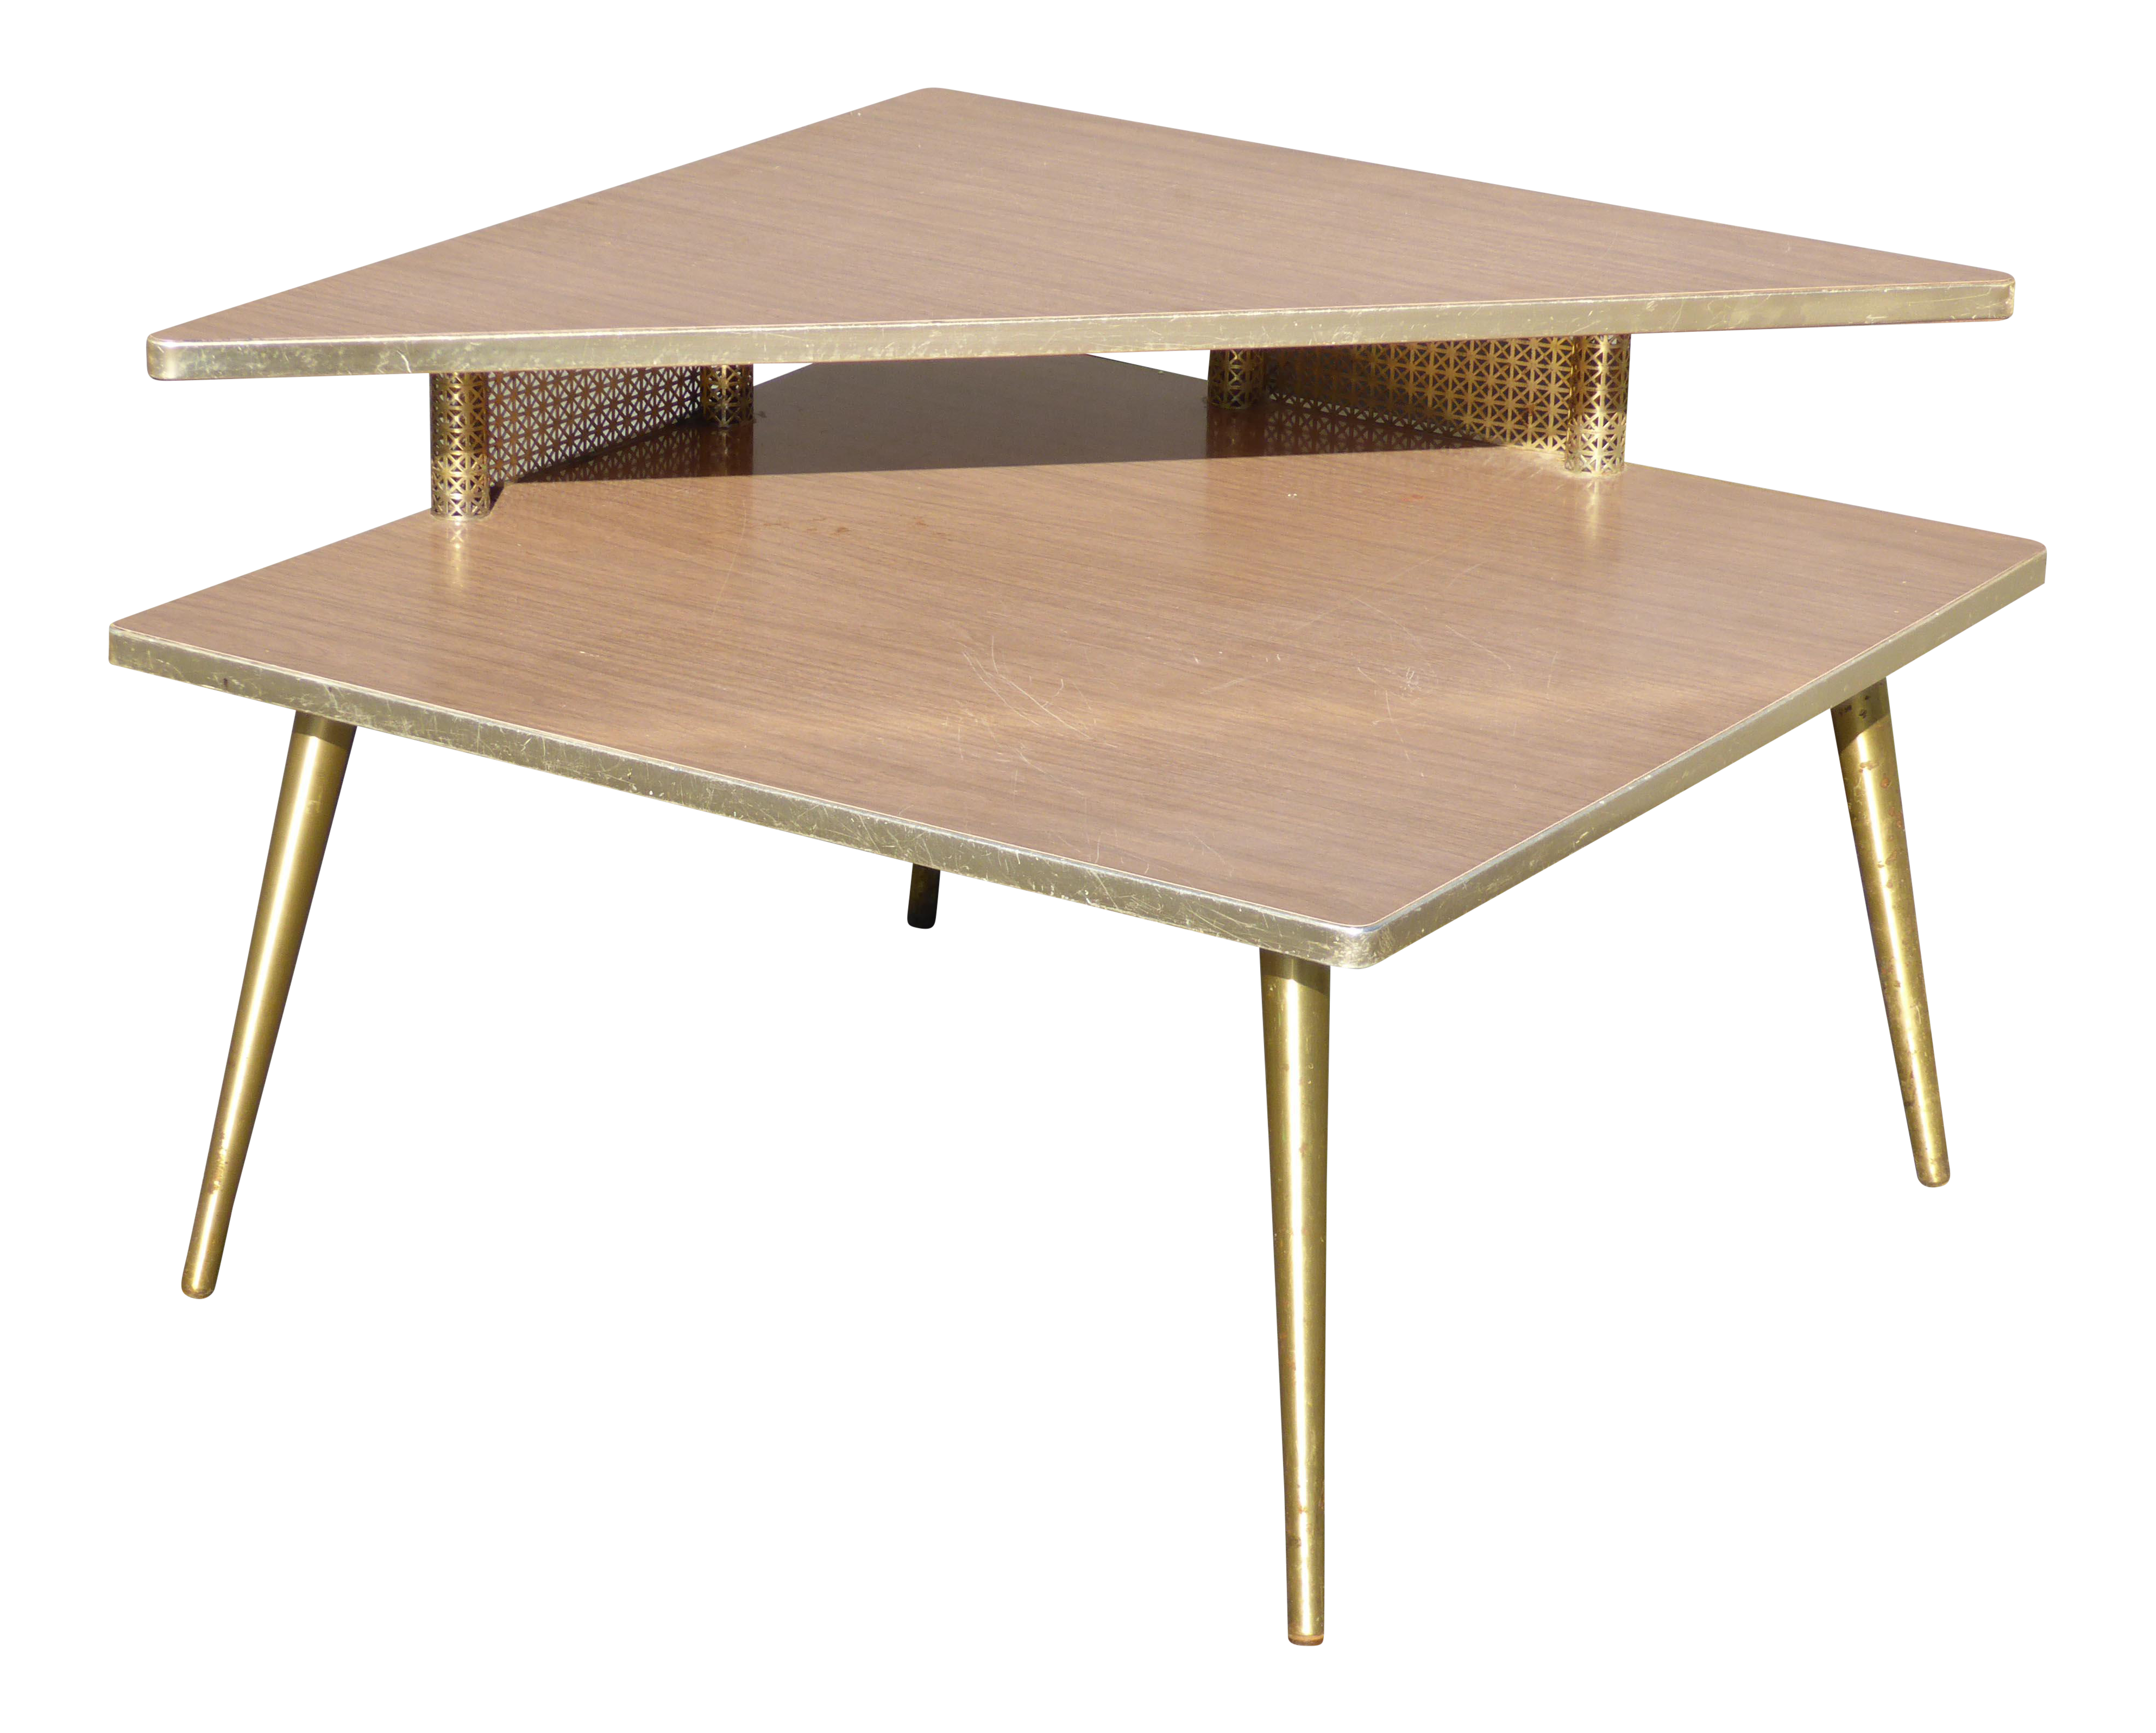 Beau Mid Century Modern Retro Corner Table /End Table With Brass Peg Legs For  Sale